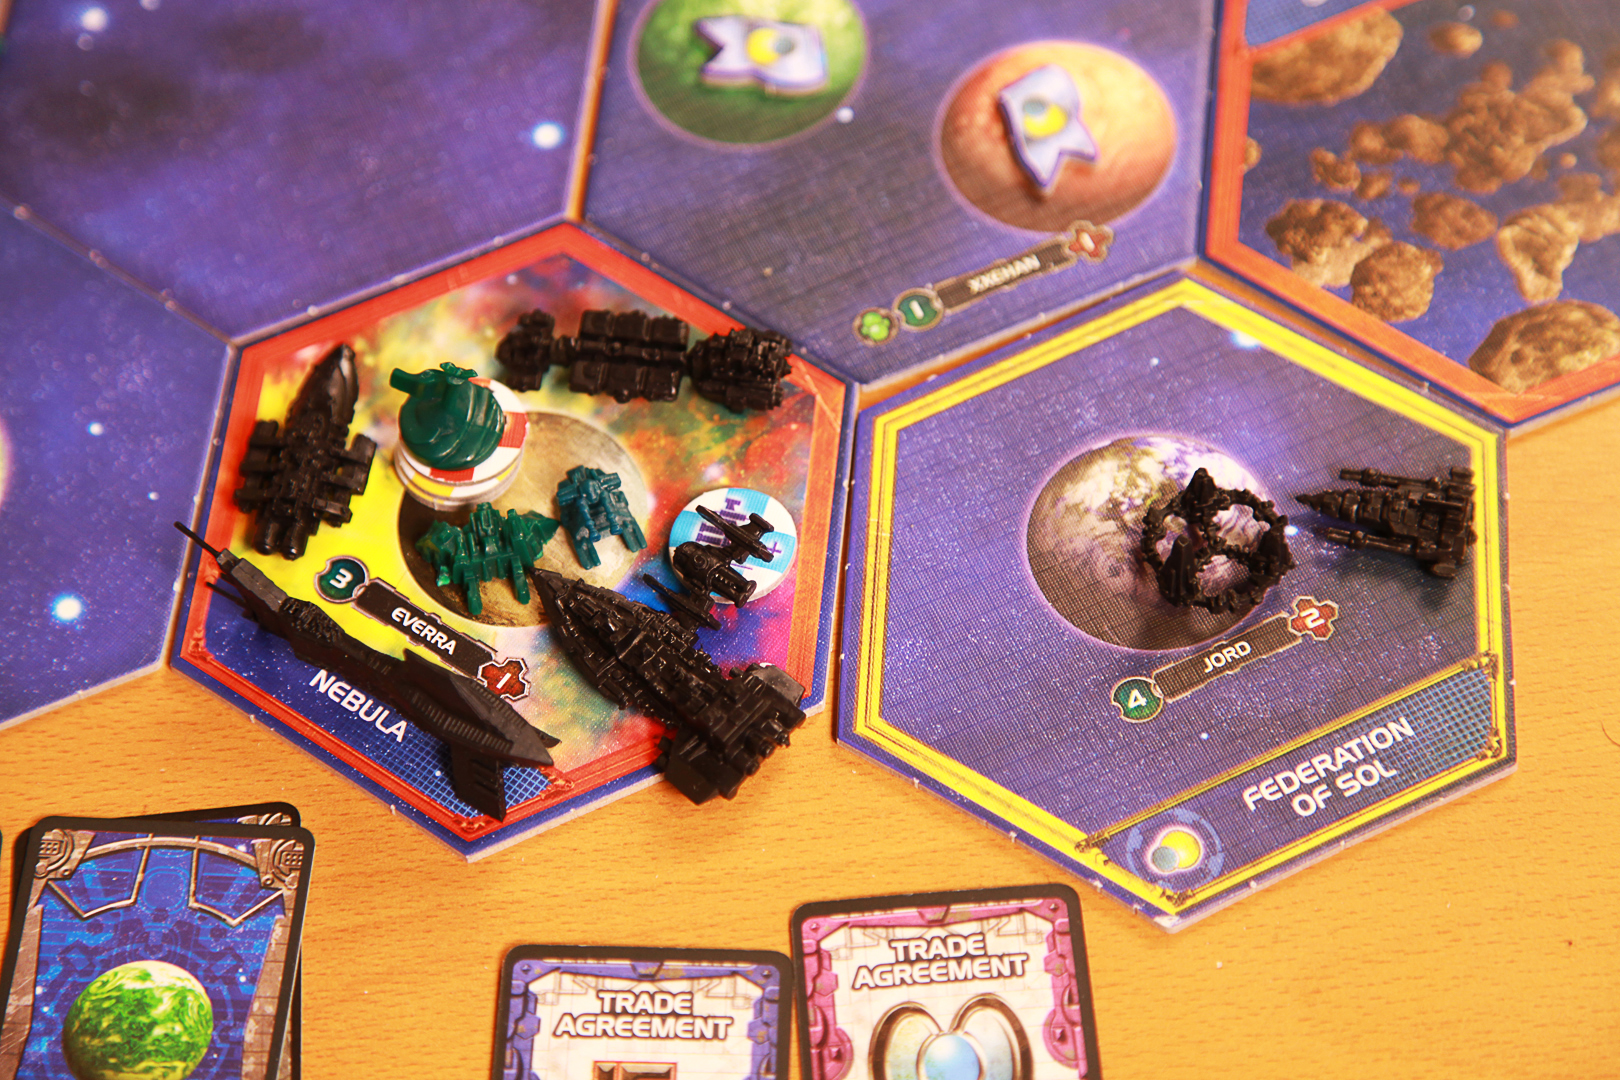 The Federation attempts - and fails - to retake Everra from the Xxcha.